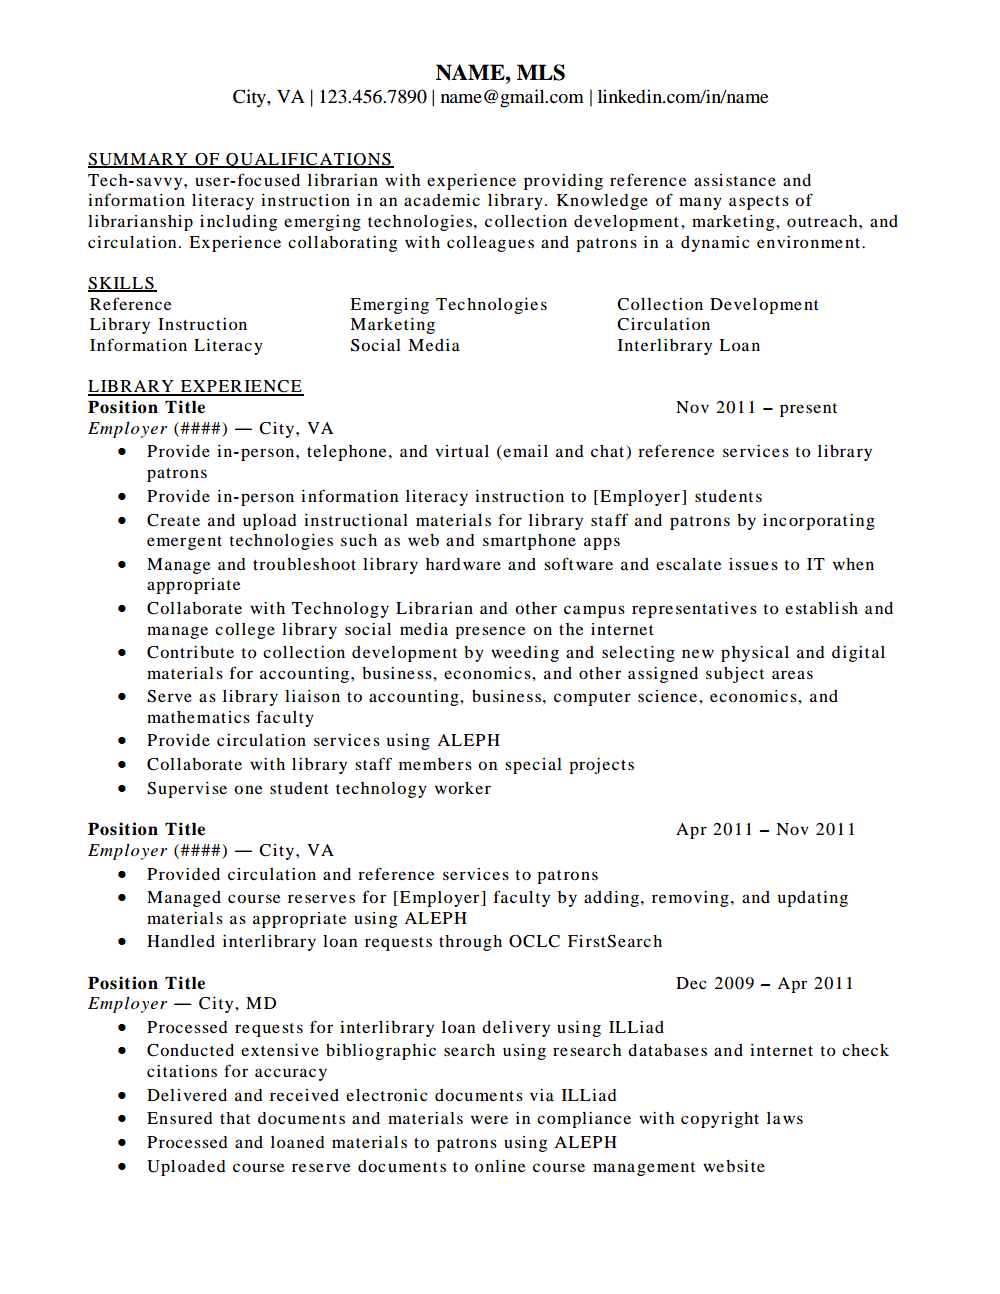 reference librarian resumes - Library Science Resume Template